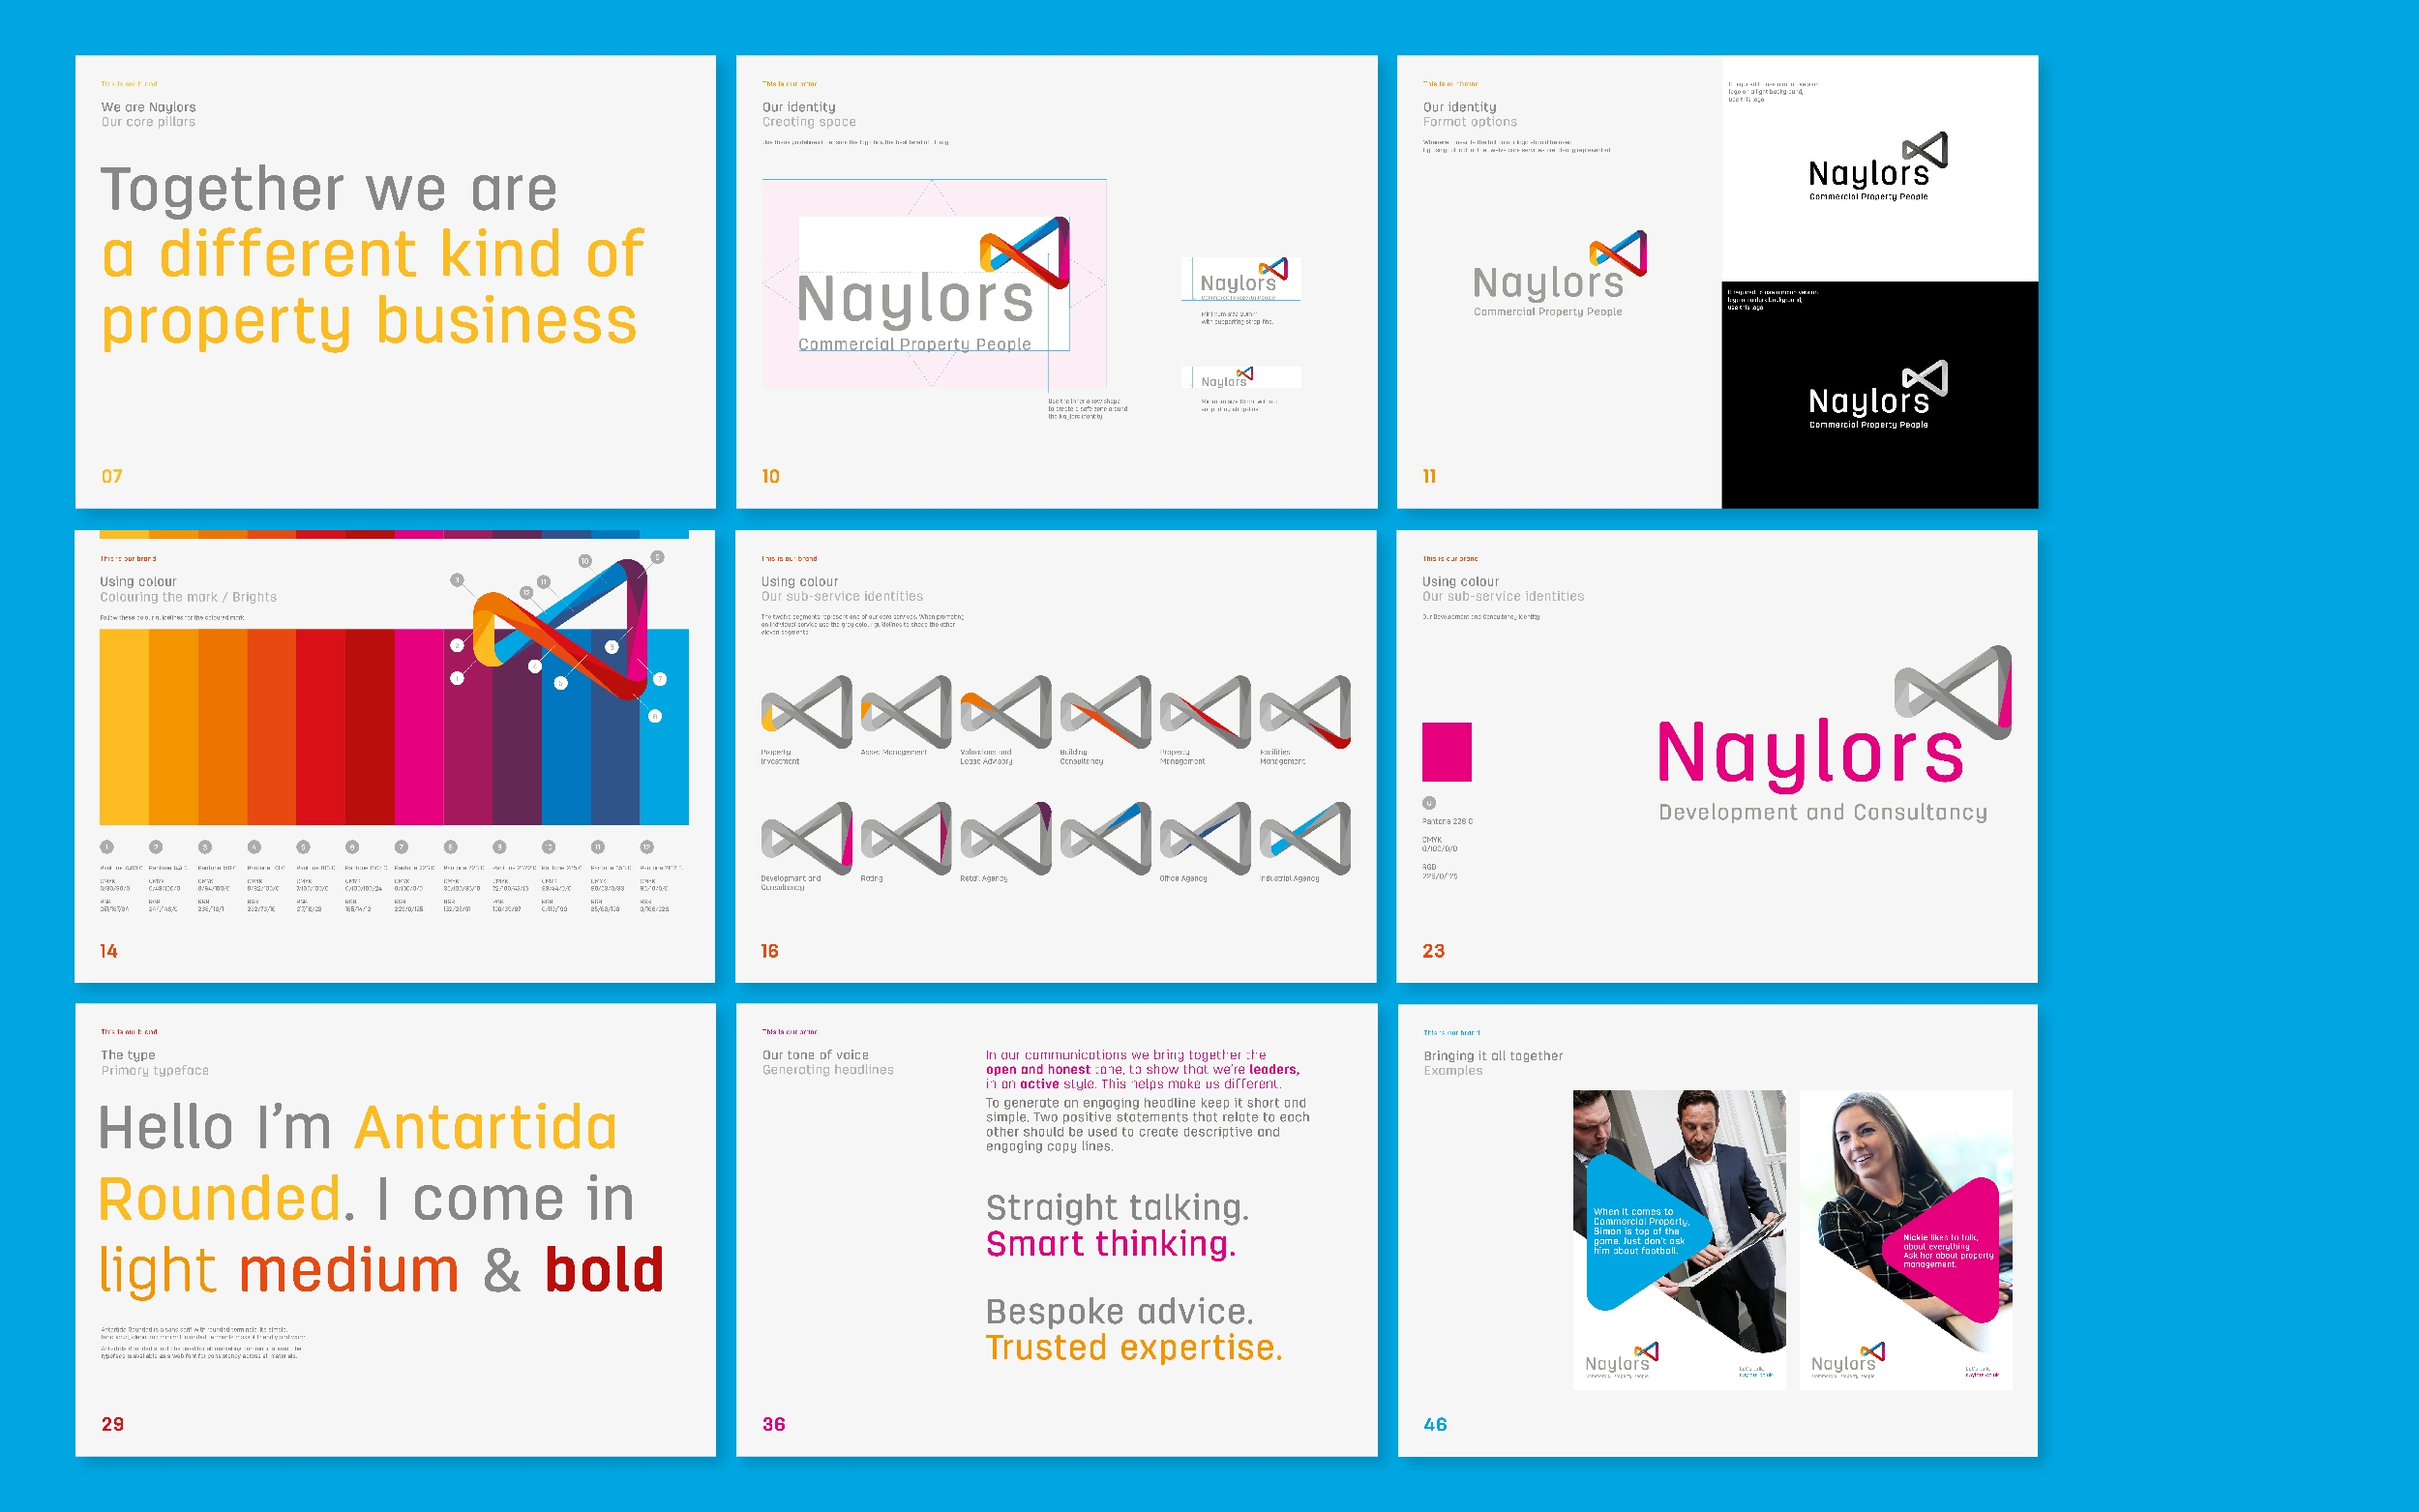 Naylors surveyors branding and brand guidelines by Altogether creative.